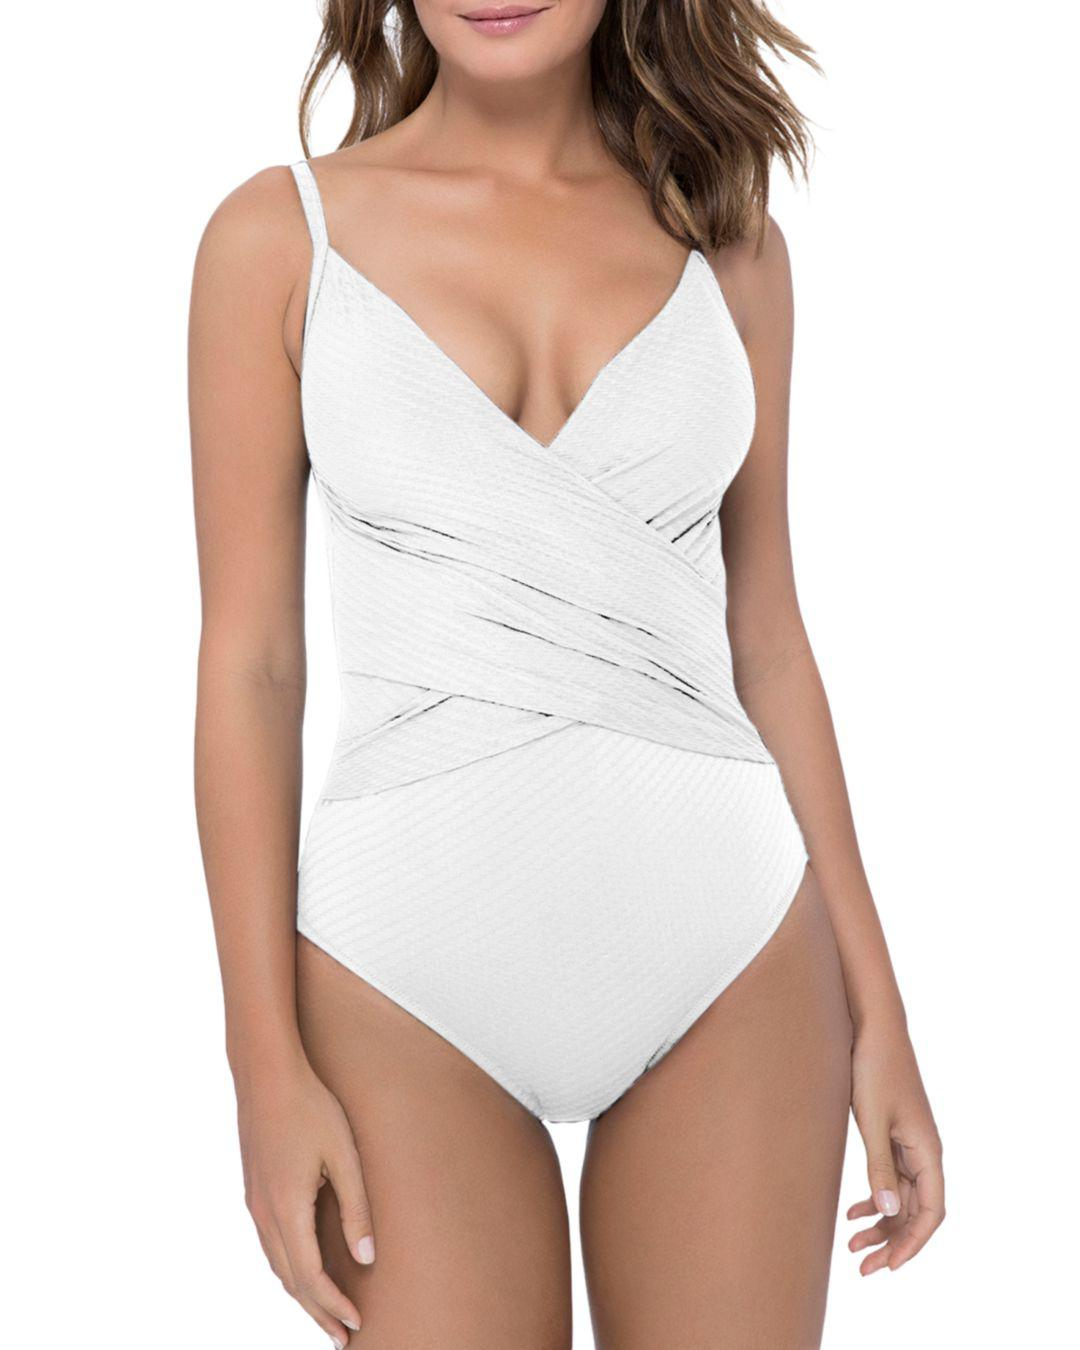 bf40a67a33511 Gottex. Women's White Ribbons Ribbons Crossover V-neck One Piece Swimsuit